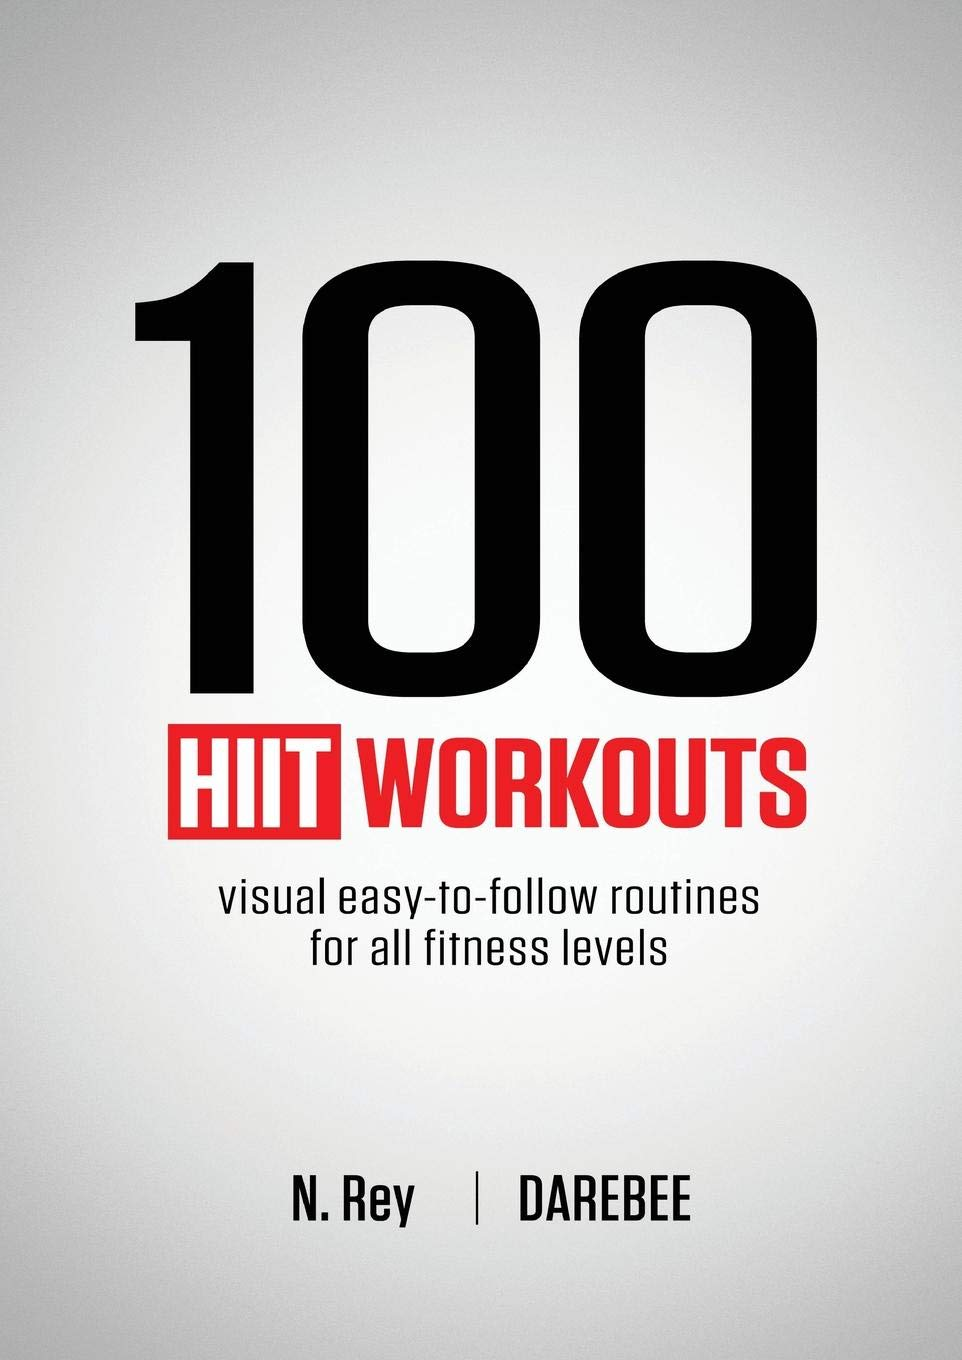 100 HIIT Workouts: Visual easy-to-follow routines